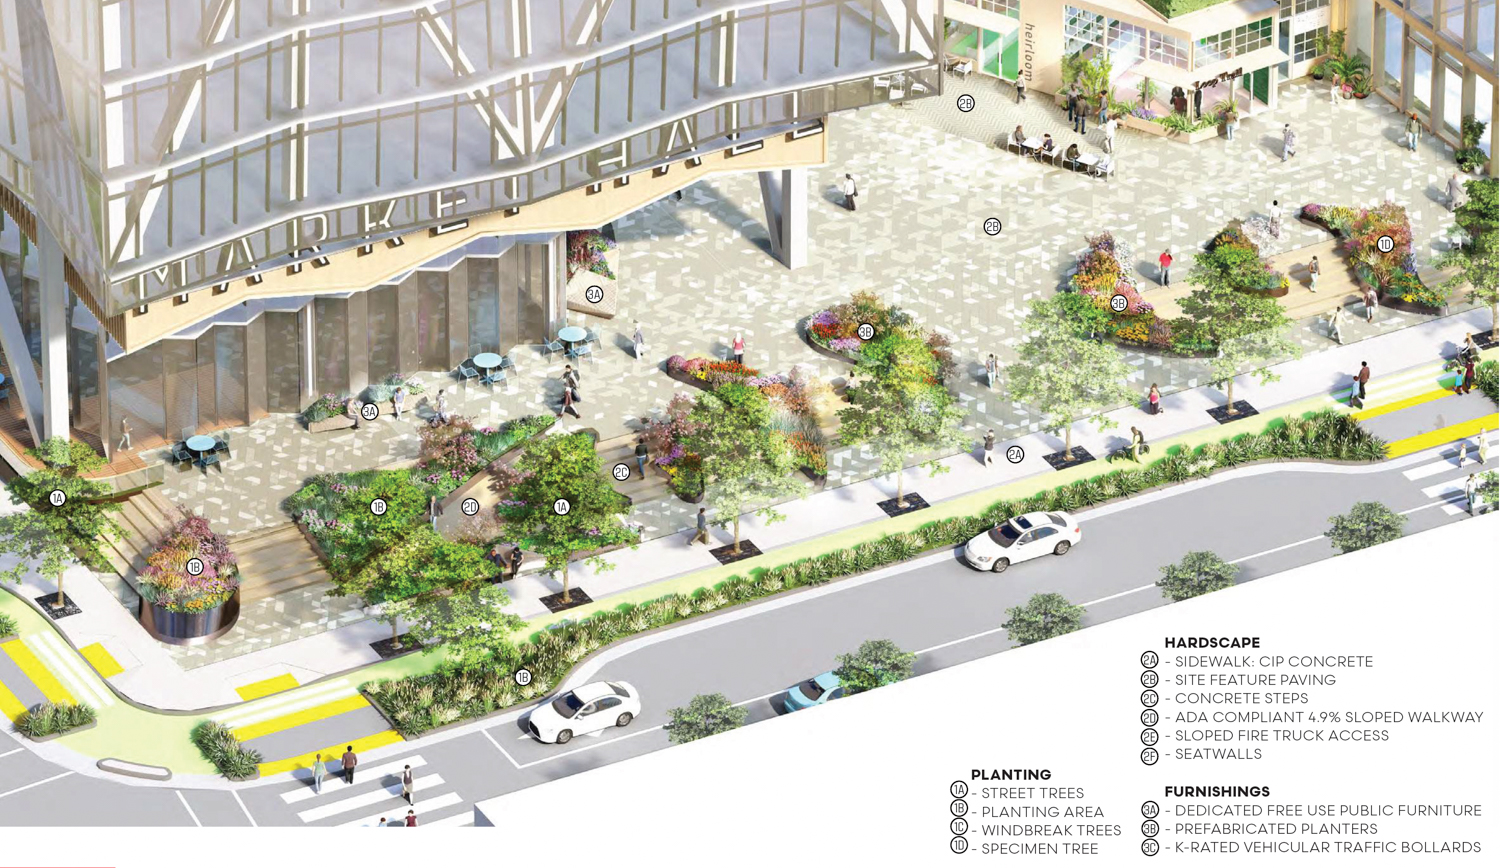 610-698 Brannan Street SF Flower Mart 5th Street Plaza aerial perspective, drawing by James Corner Field Operations